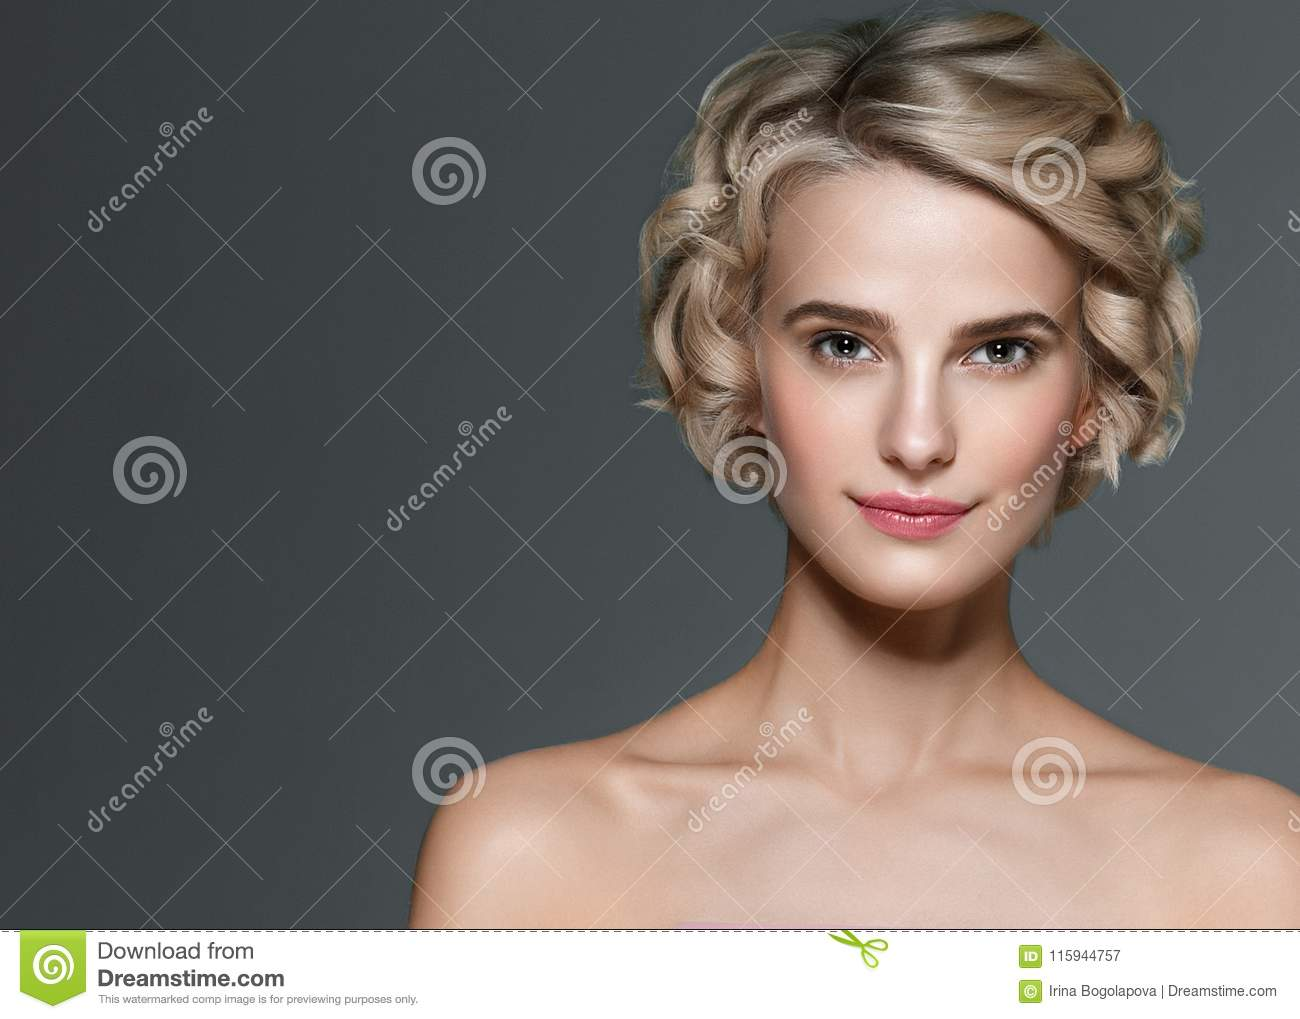 Beautiful woman short blonde hair and hands manicure nails elegant beauty portrait.